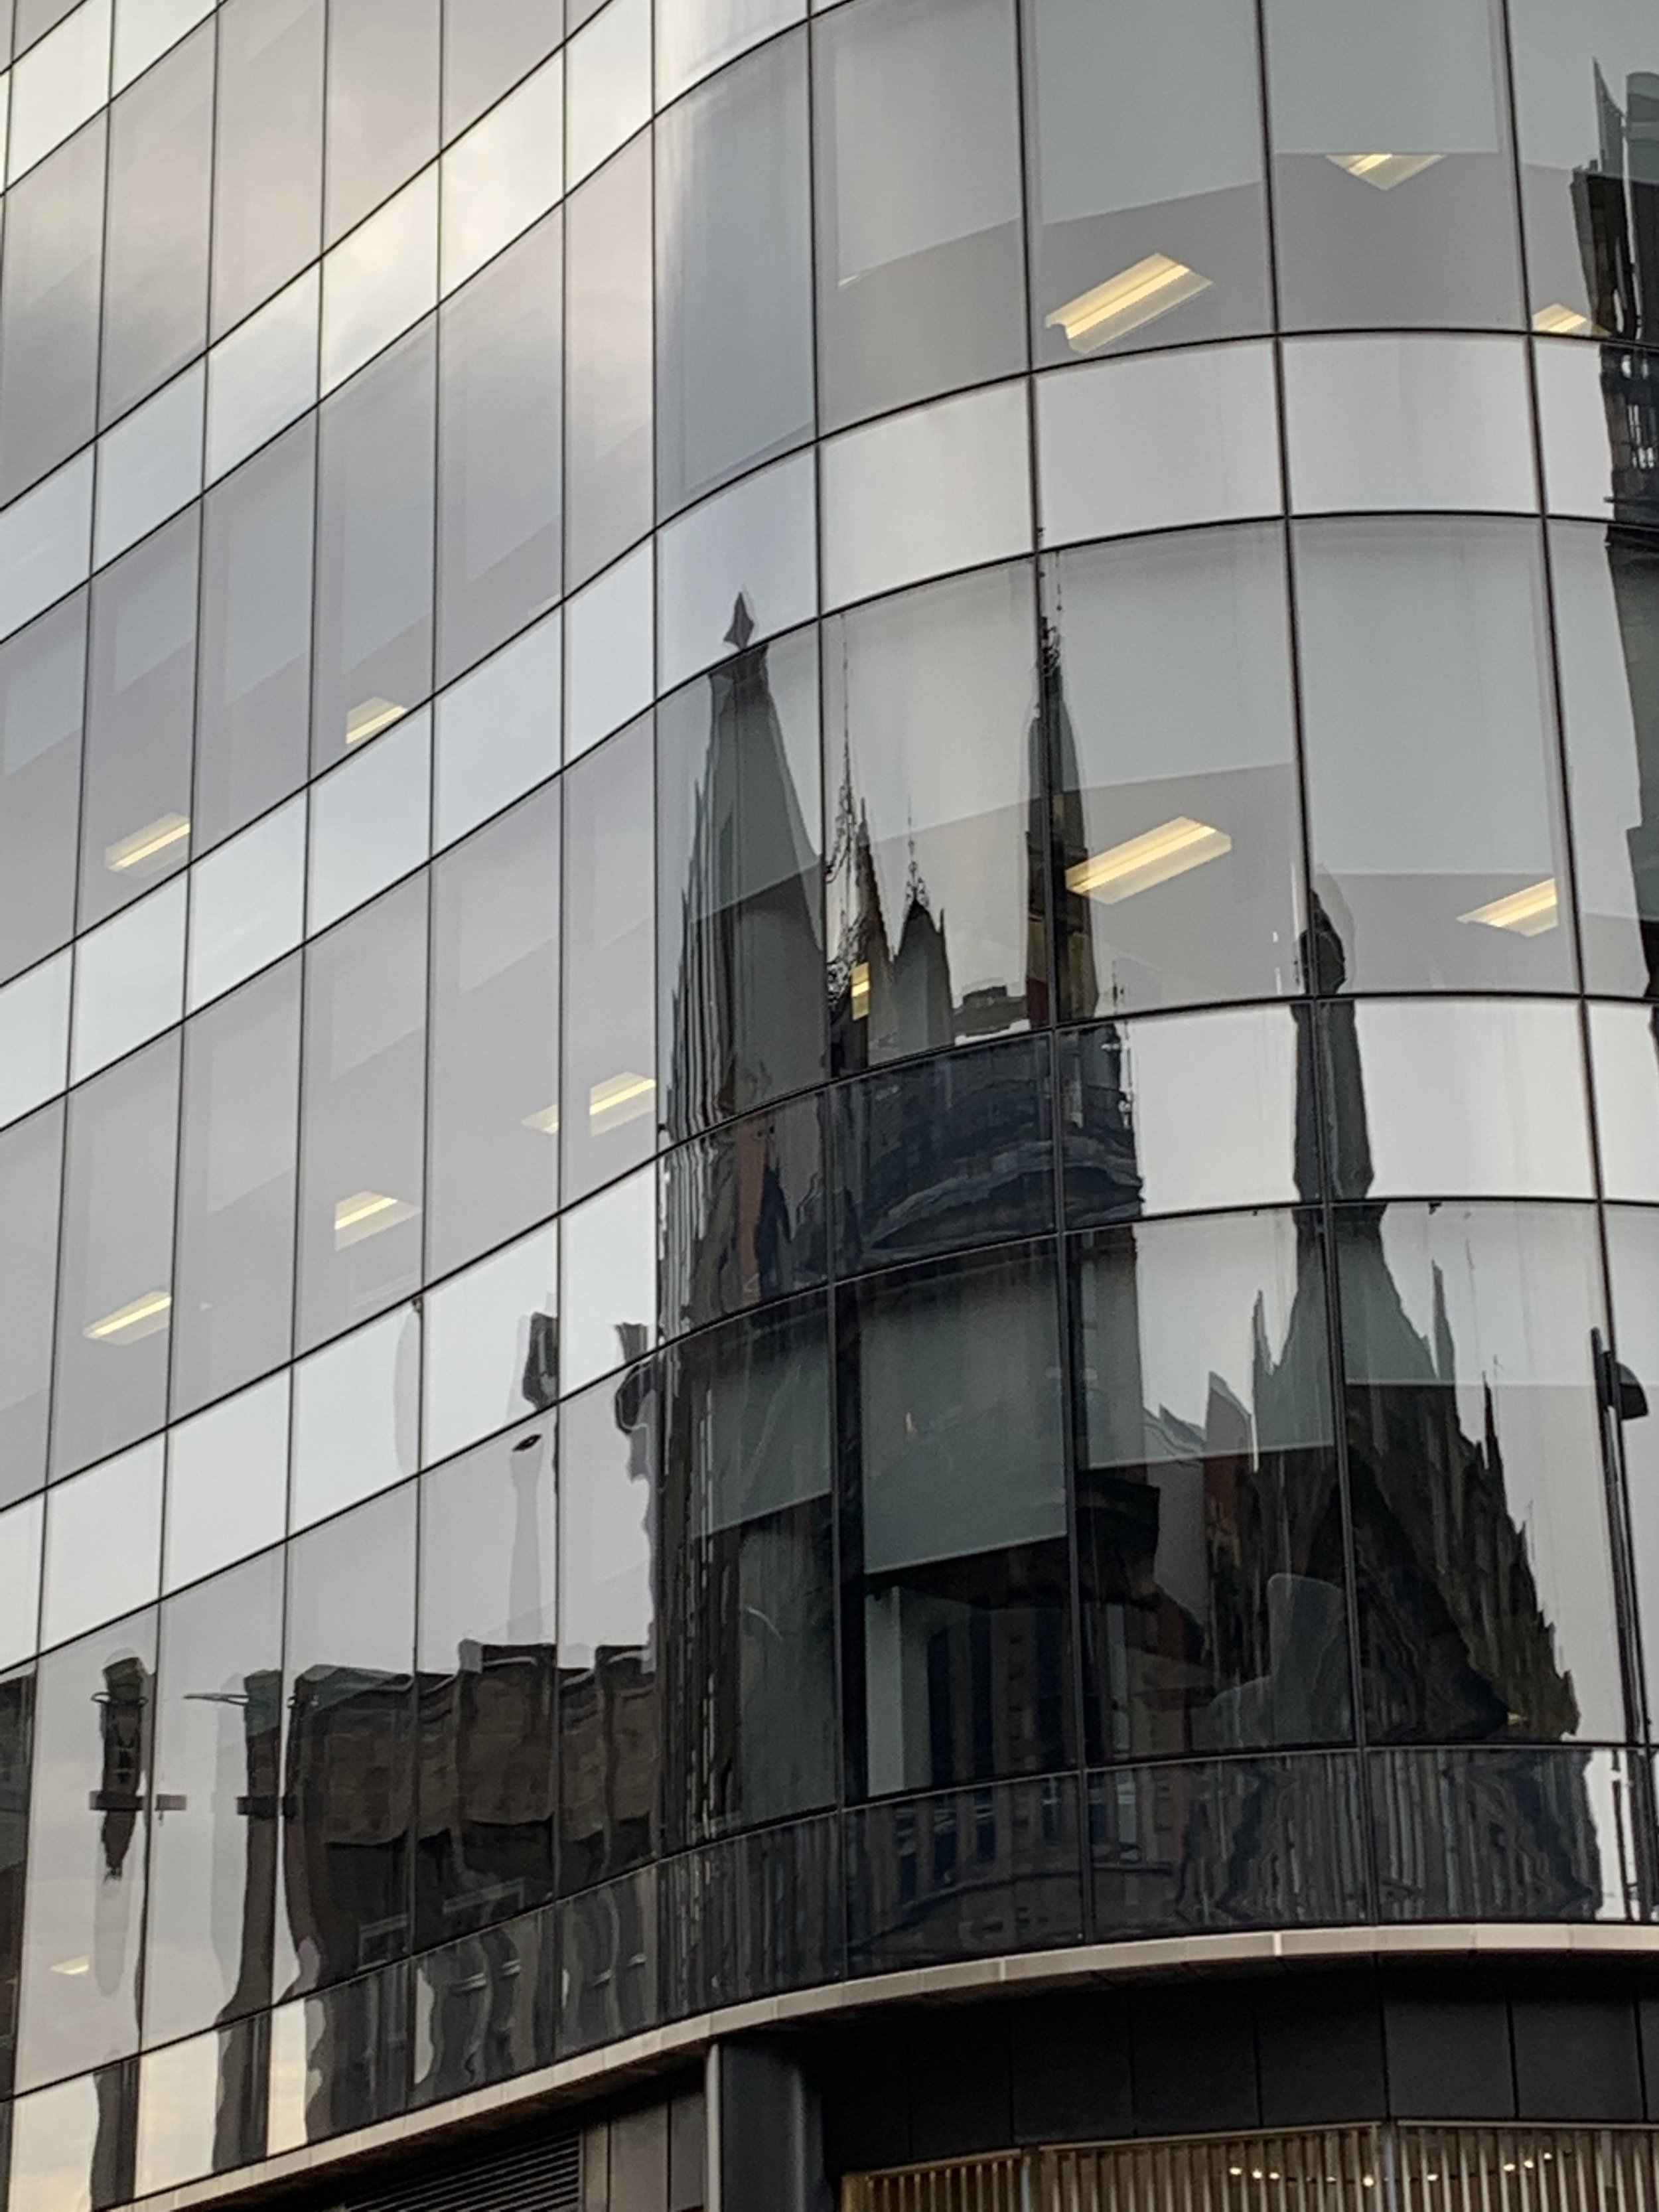 Ancient architecture reflected in modern windows. Glasgow, Scotland